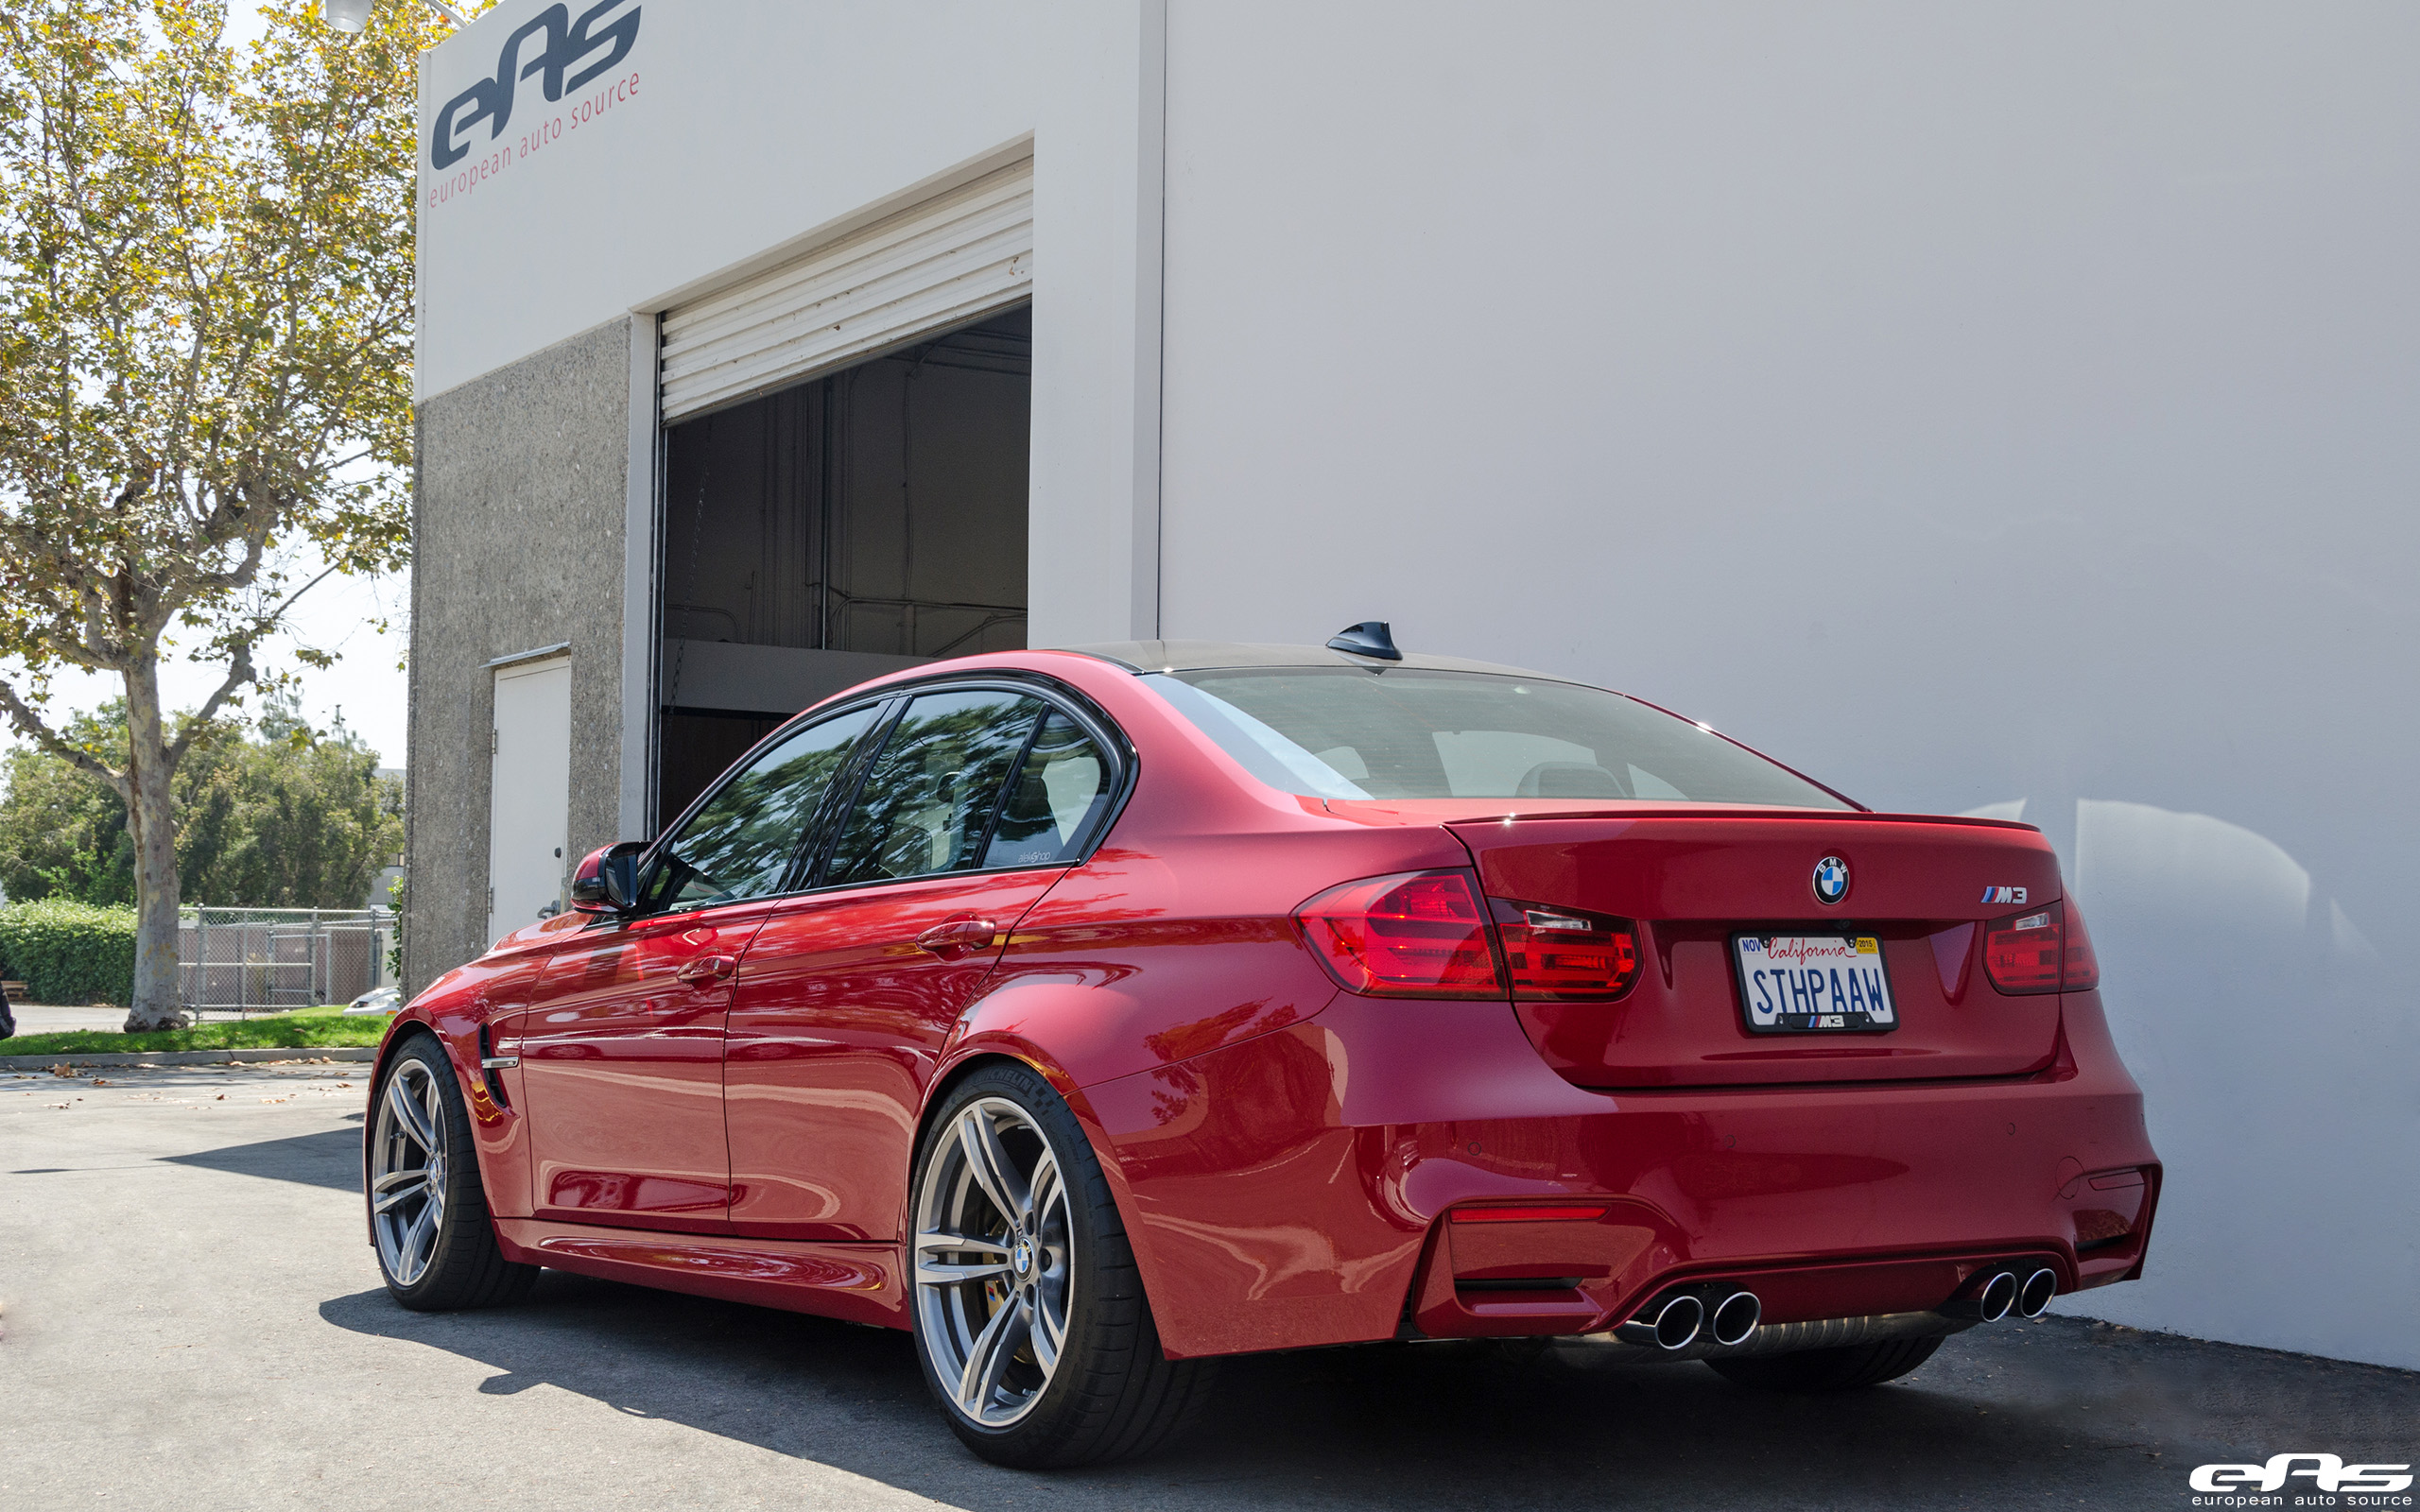 Imola Red F80 M3 | BMW Performance Parts & Services